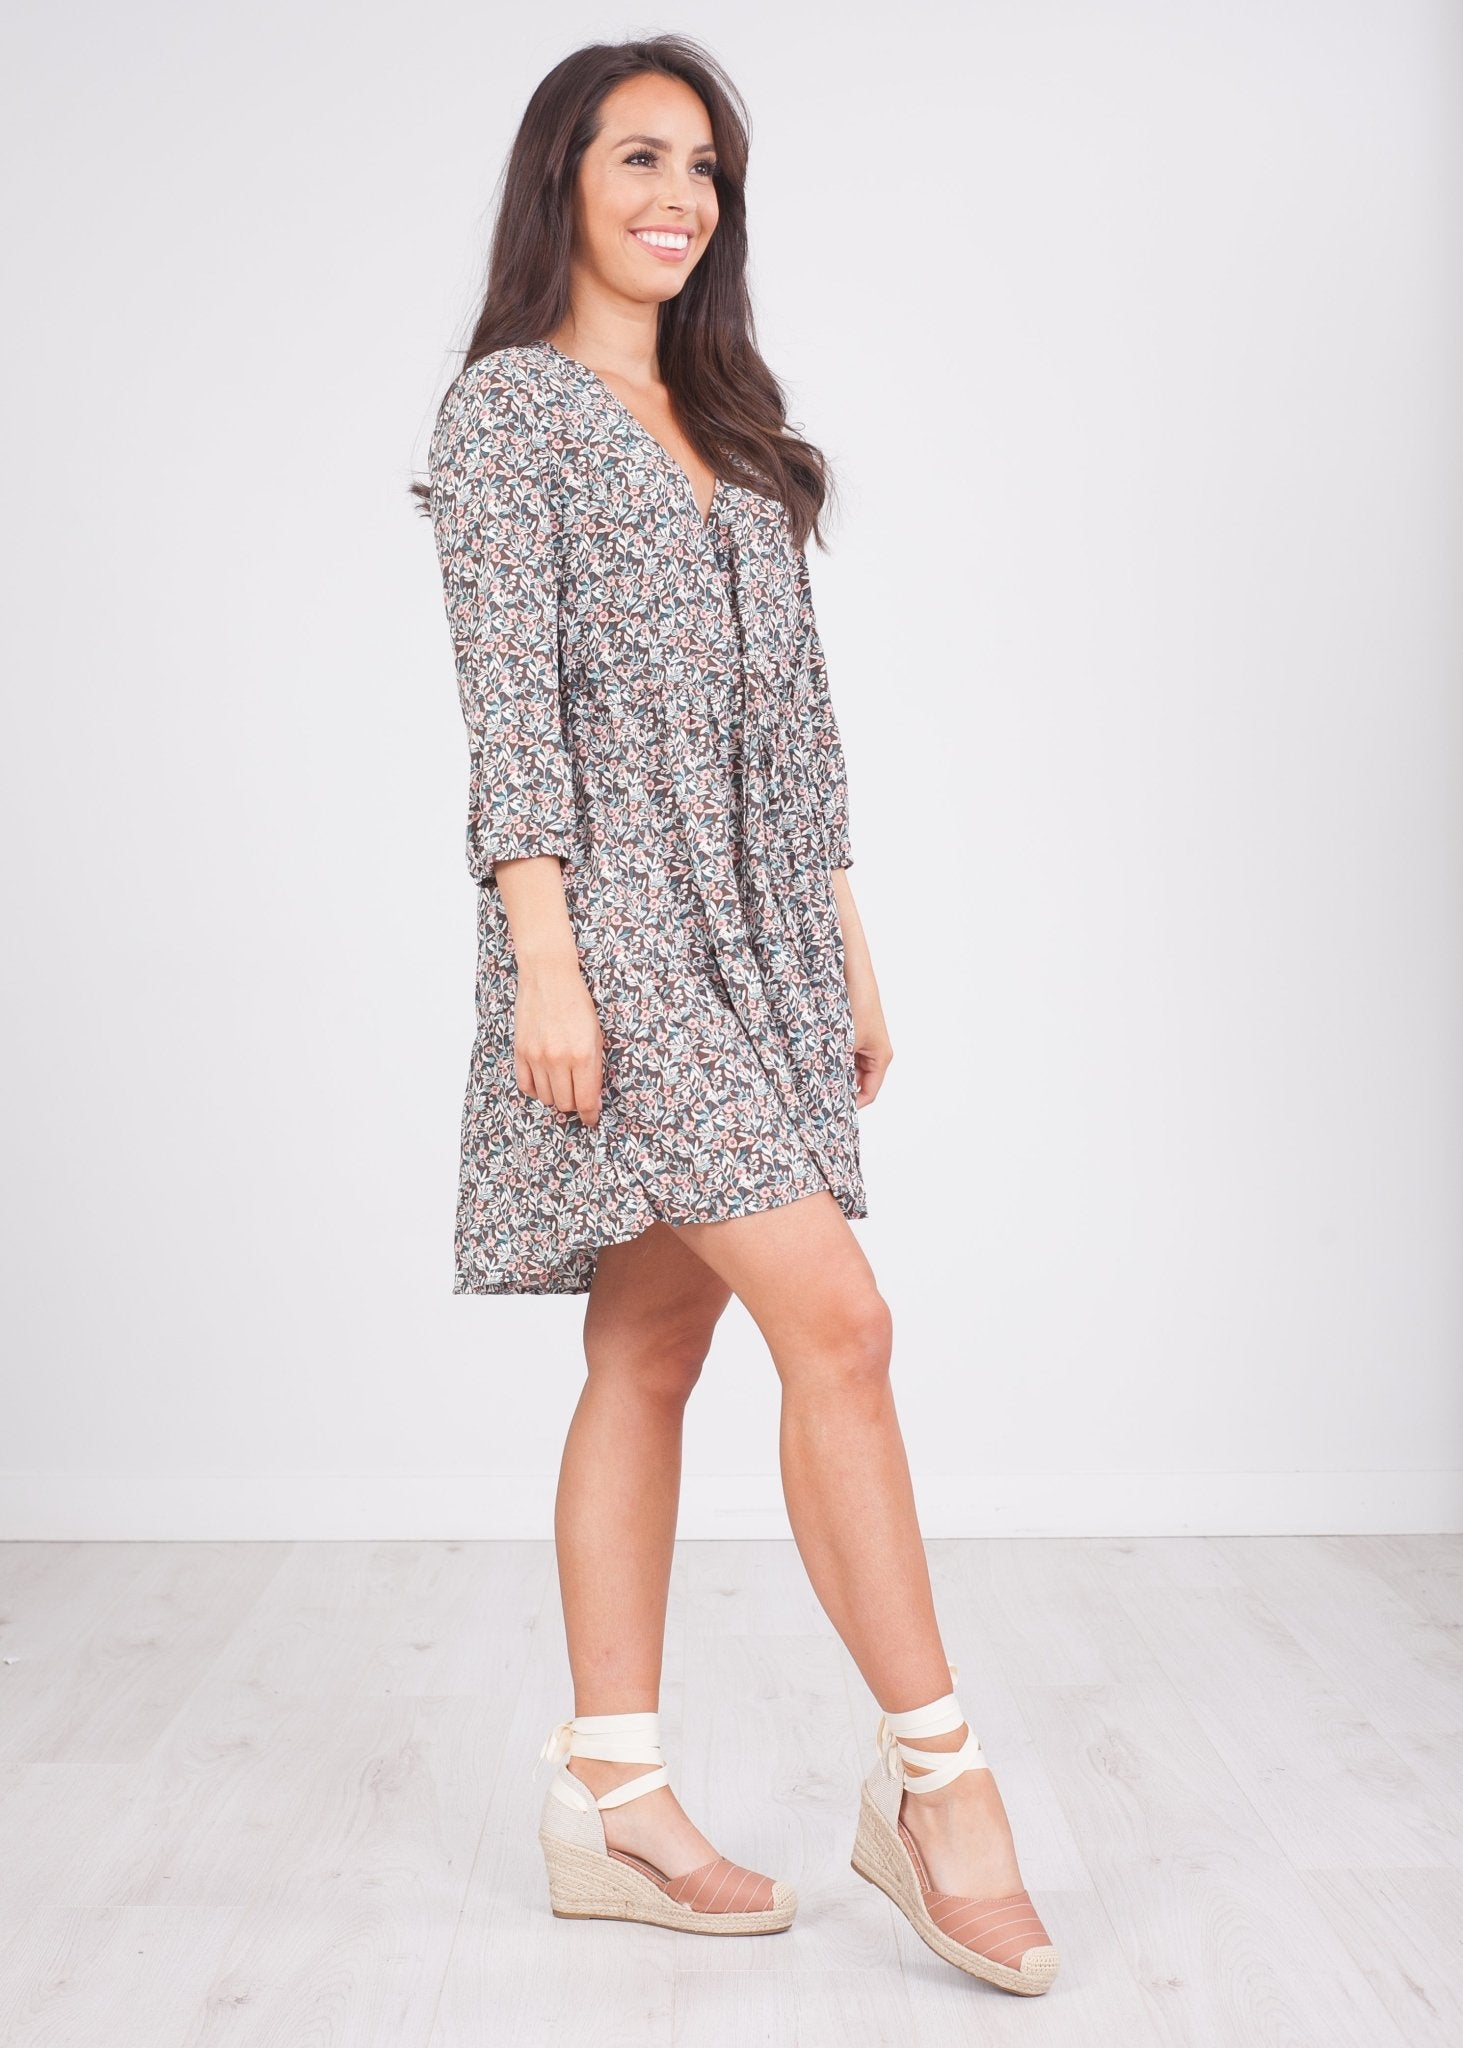 Cherie Multiprint Dress - The Walk in Wardrobe